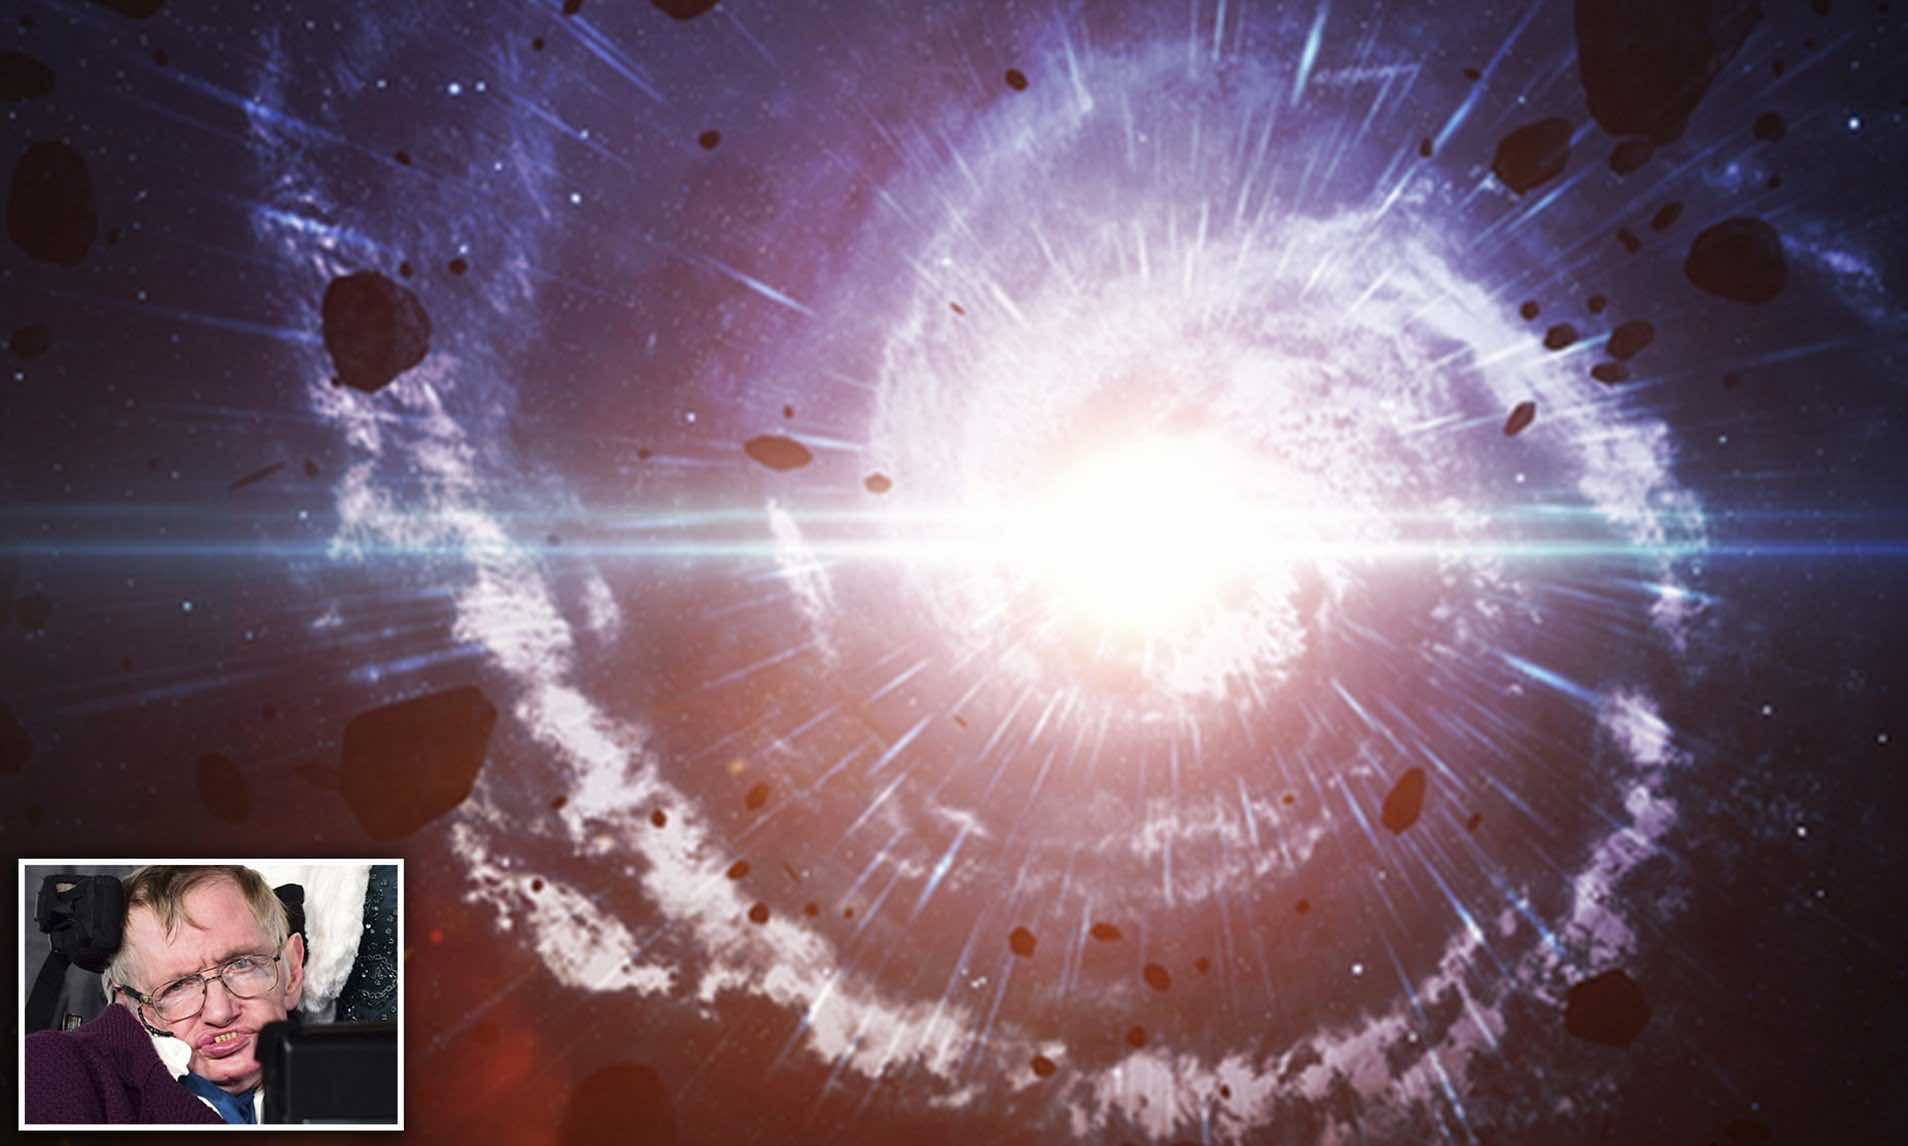 Stephen Hawking: Nothing existed before the Big Bang